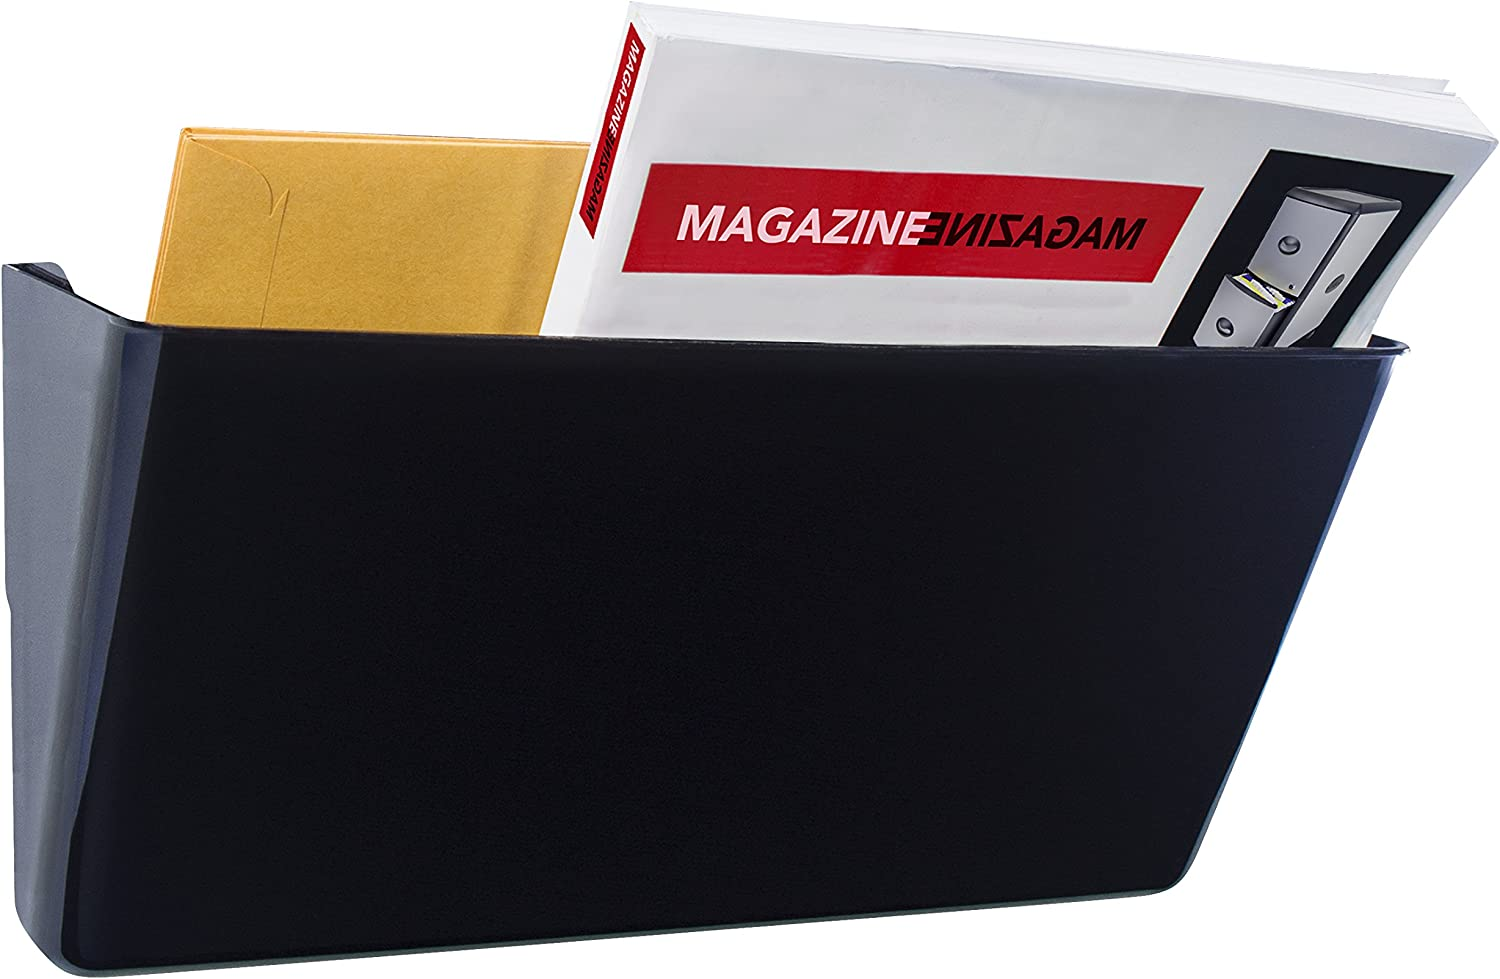 13 x 7 x 4 Inches Each 70216B04C Storex Recycled Wall Files Black Case of 4 6-Packs Letter